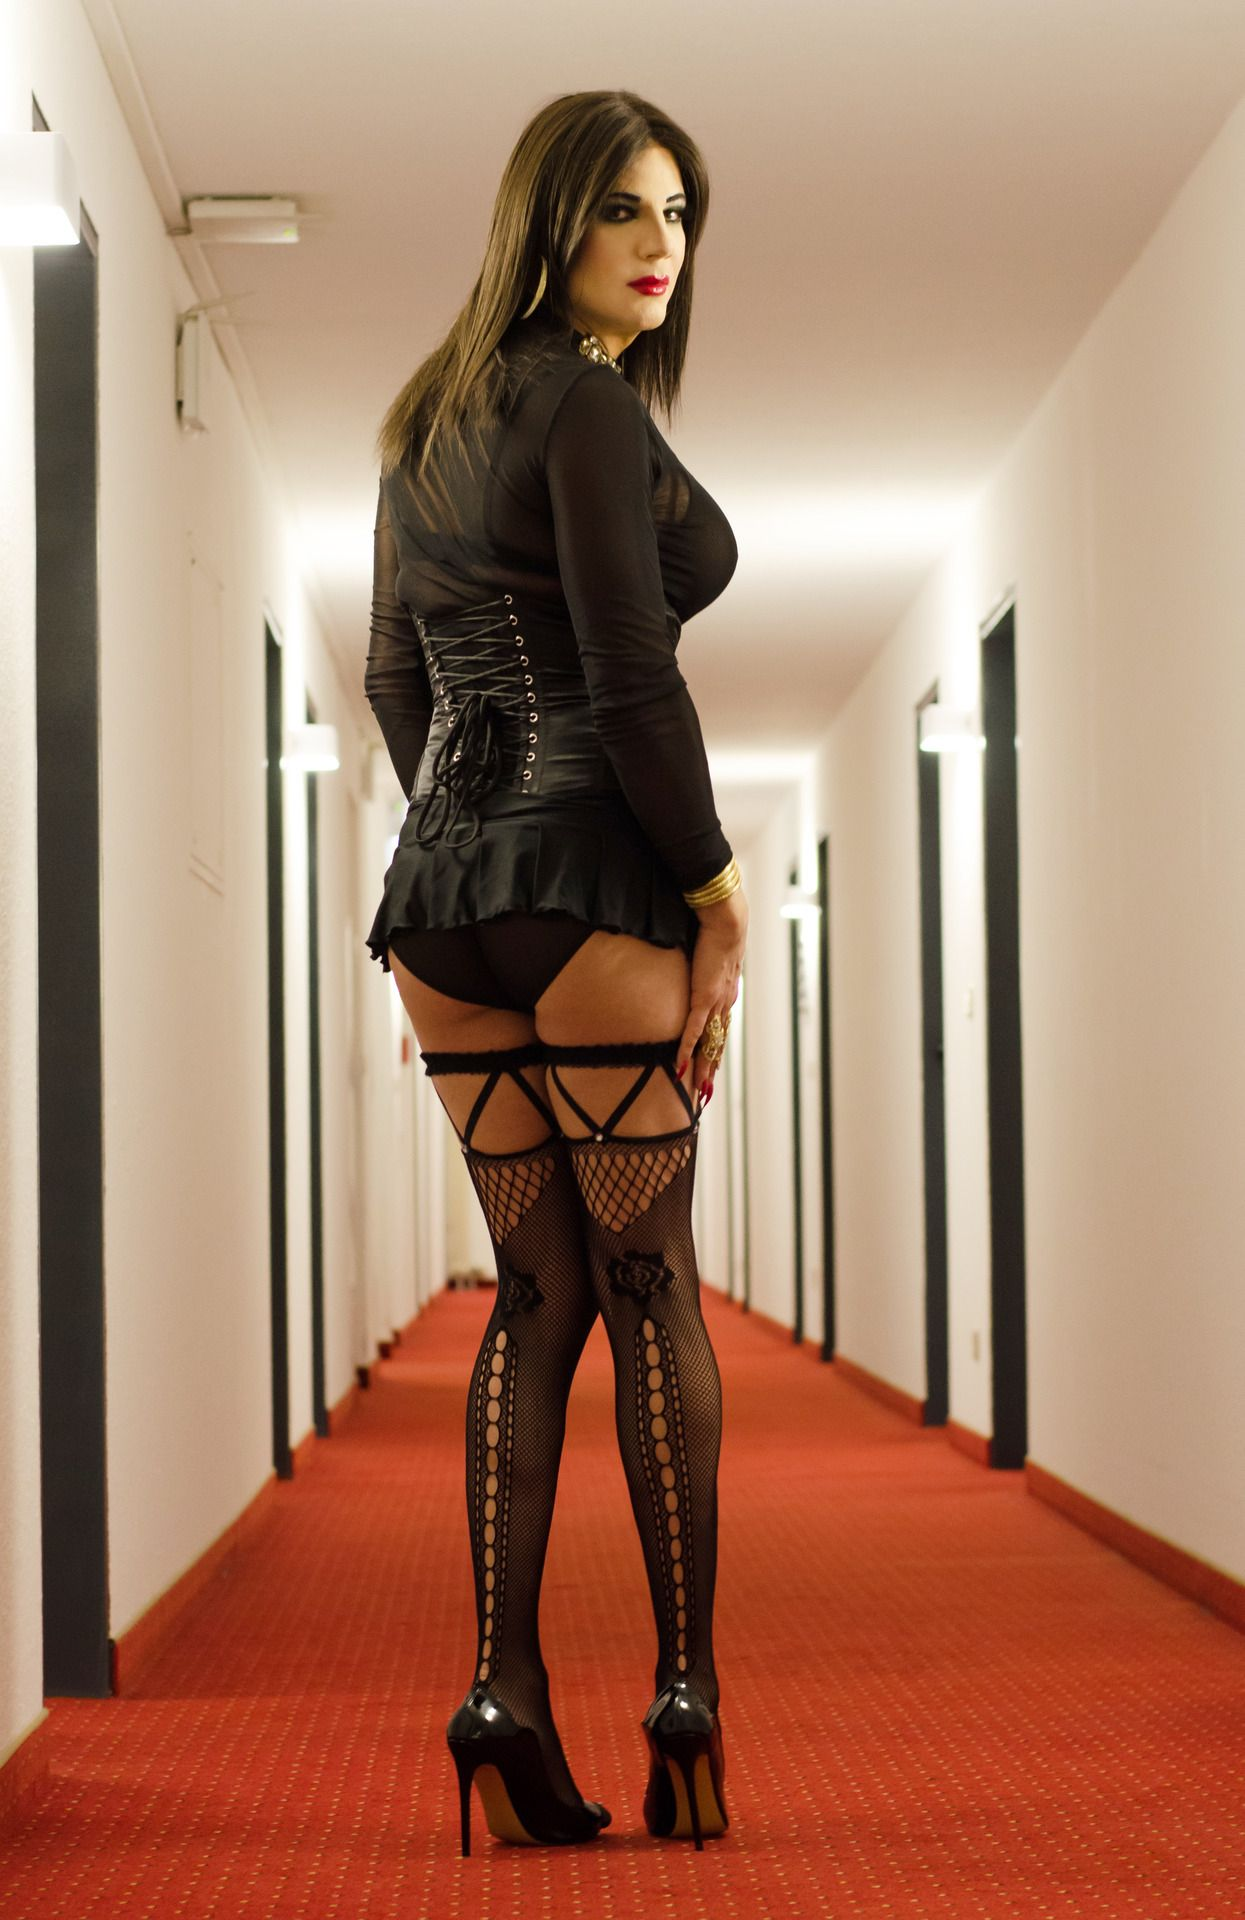 a293f0d54374d Much love again to Thierry for my new gorgeous stiletto heels and the  hidden toys.